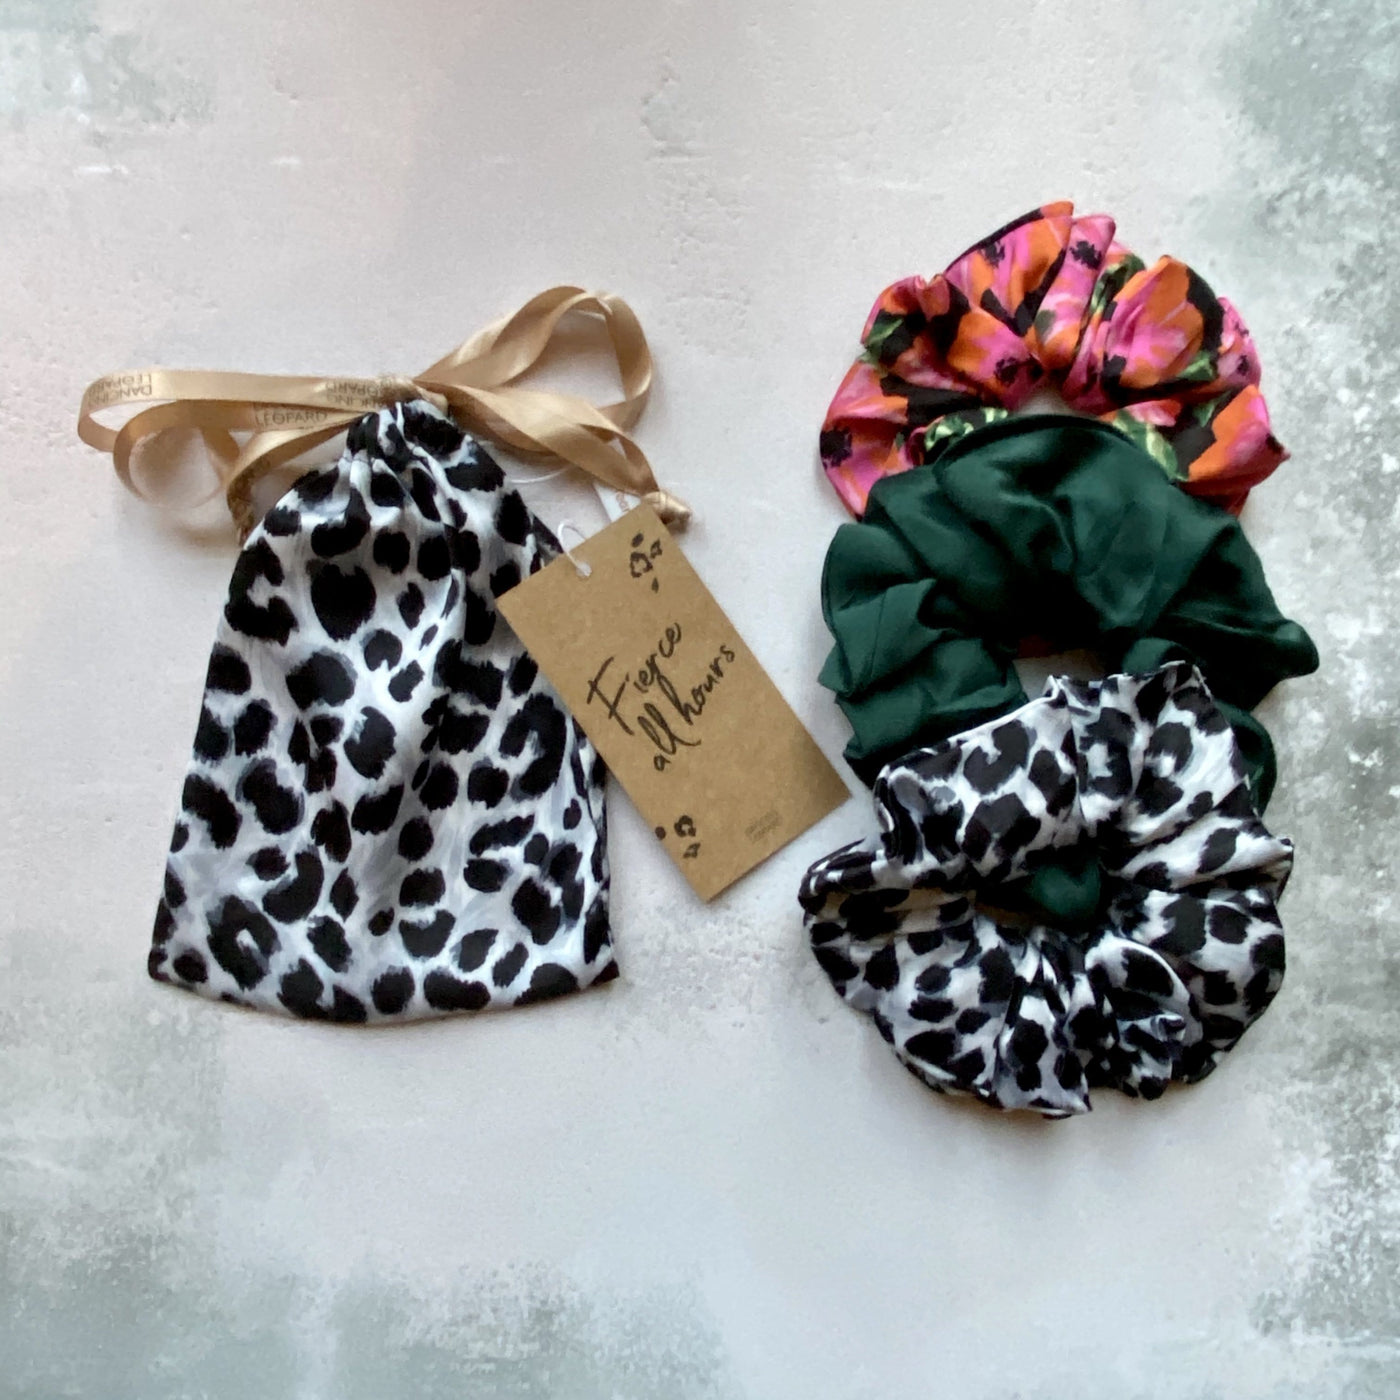 Charity Scrunchie in Mono Leopard Mix